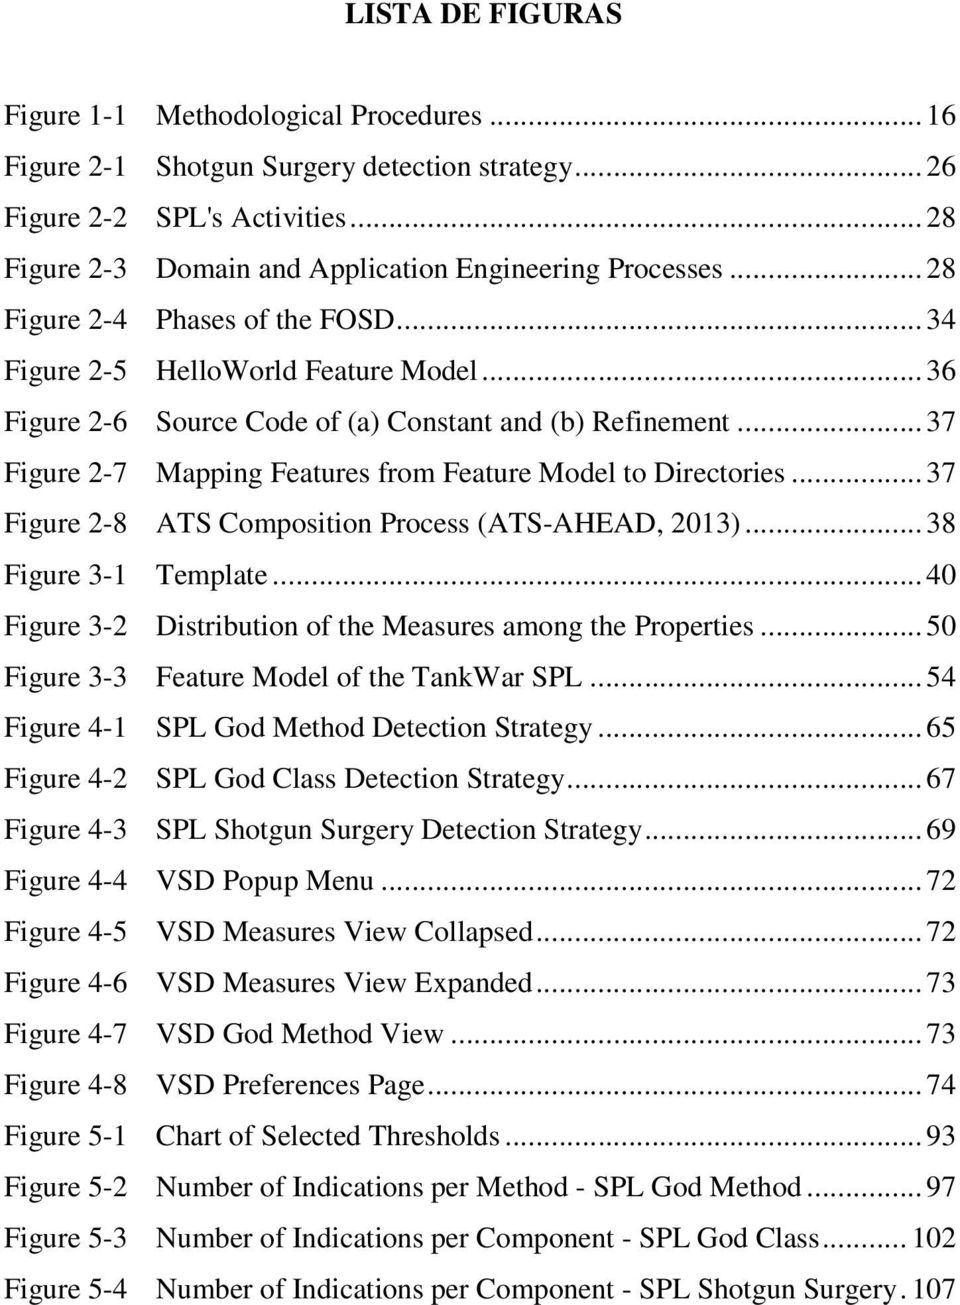 .. 37 Figure 2-7 Mapping Features from Feature Model to Directories... 37 Figure 2-8 ATS Composition Process (ATS-AHEAD, 2013)... 38 Figure 3-1 Template.